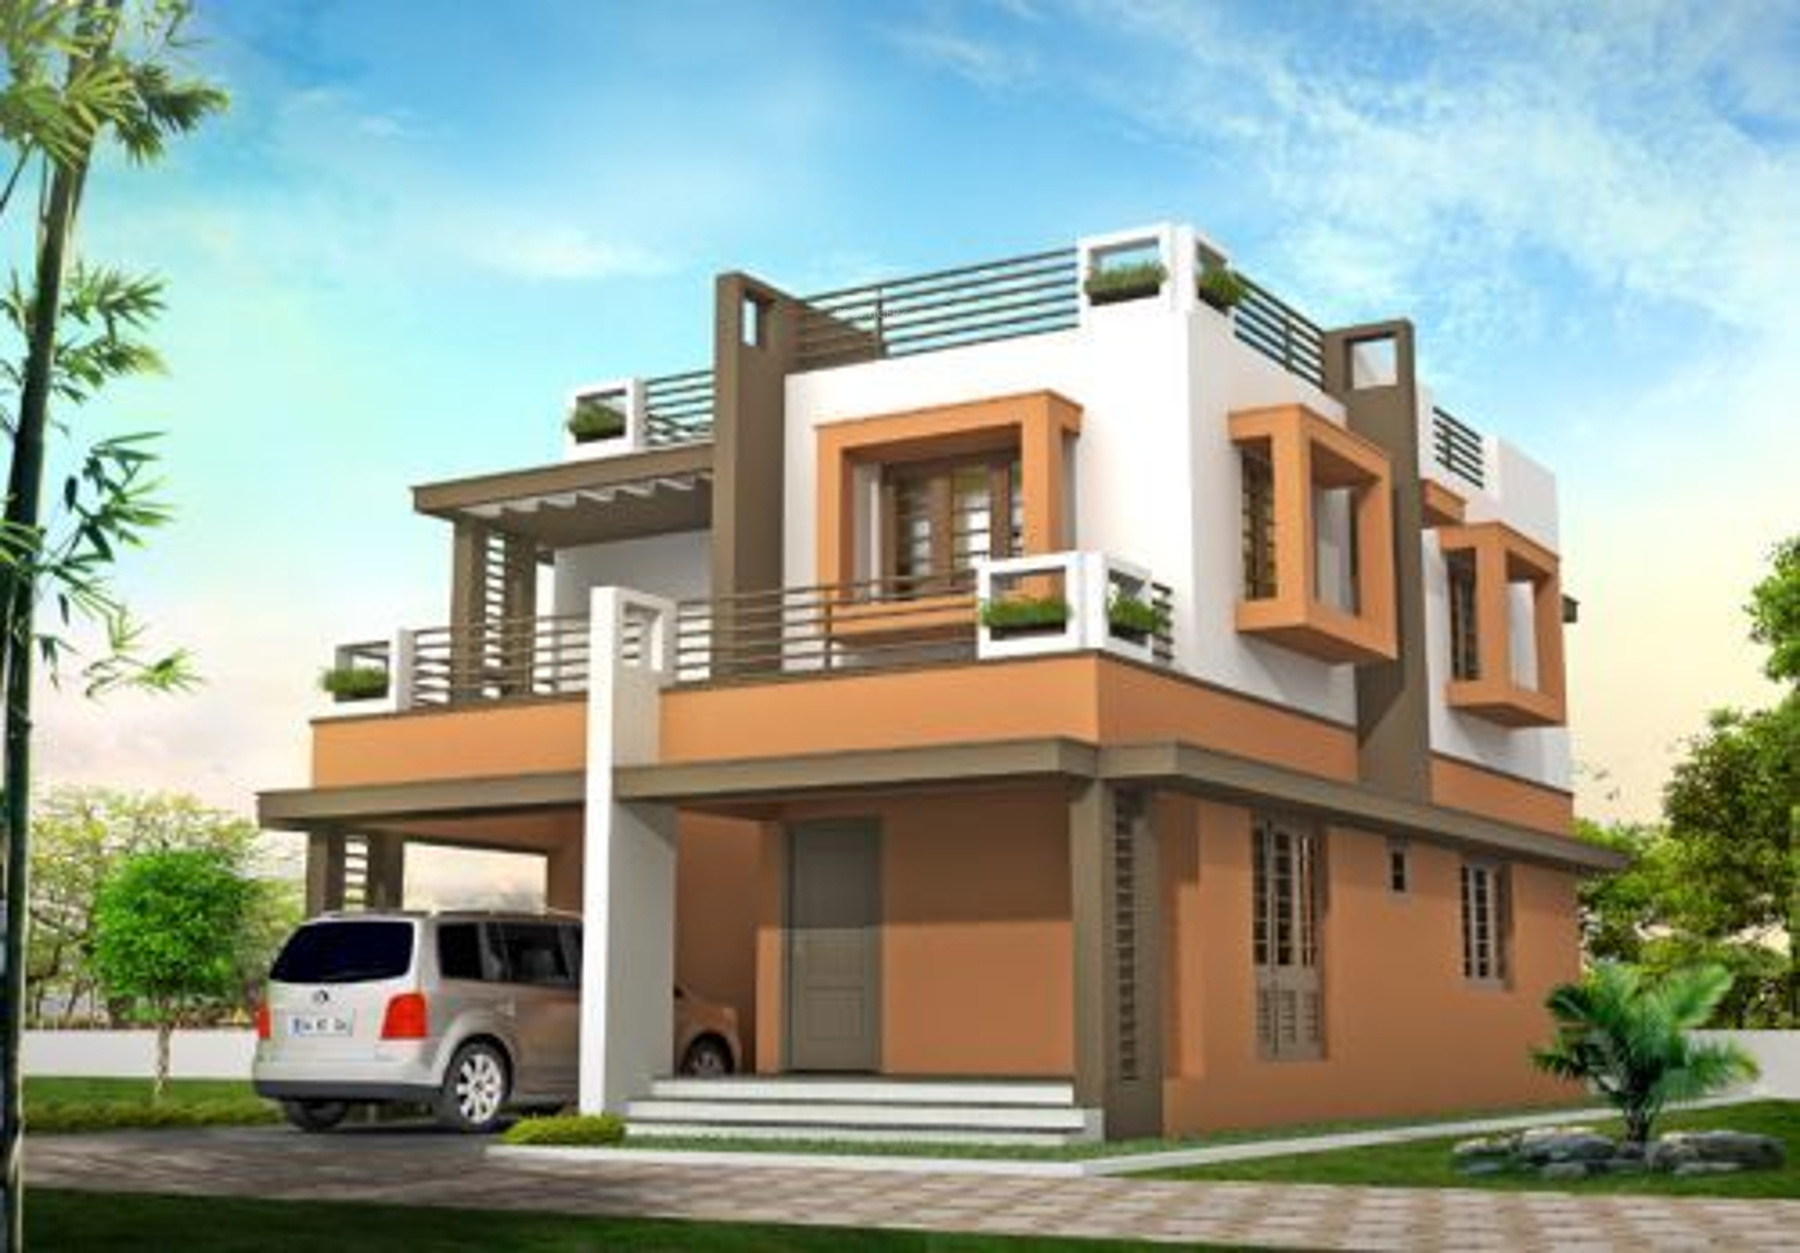 1610 sq ft 3 bhk 3t villa for sale in silver castle misty greens